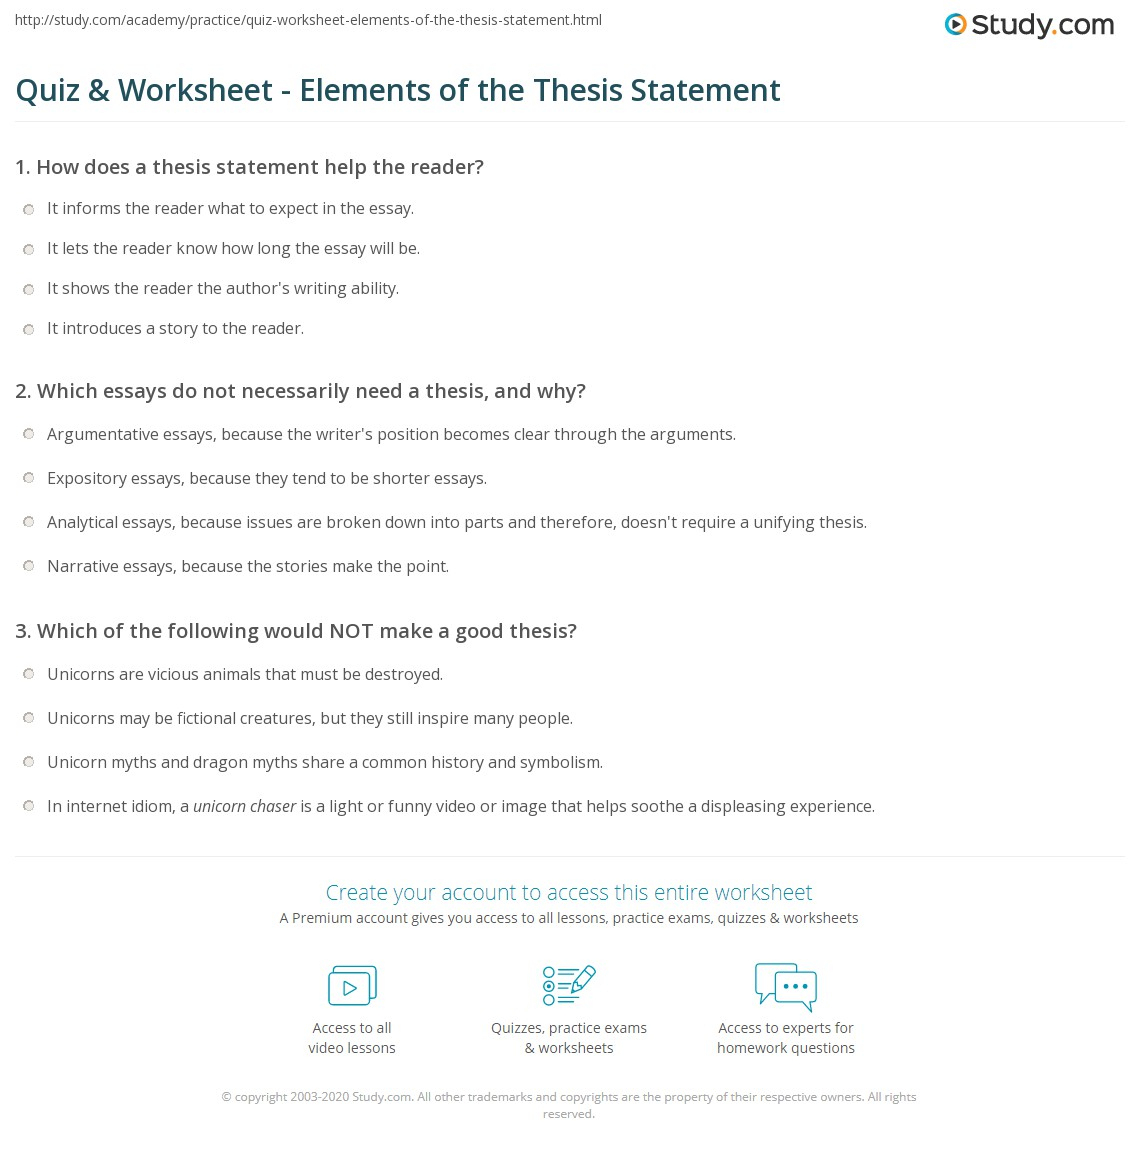 Uspto Patent Assignment Search Key 2017! Help Me With My intérieur Quiz Des Ombres